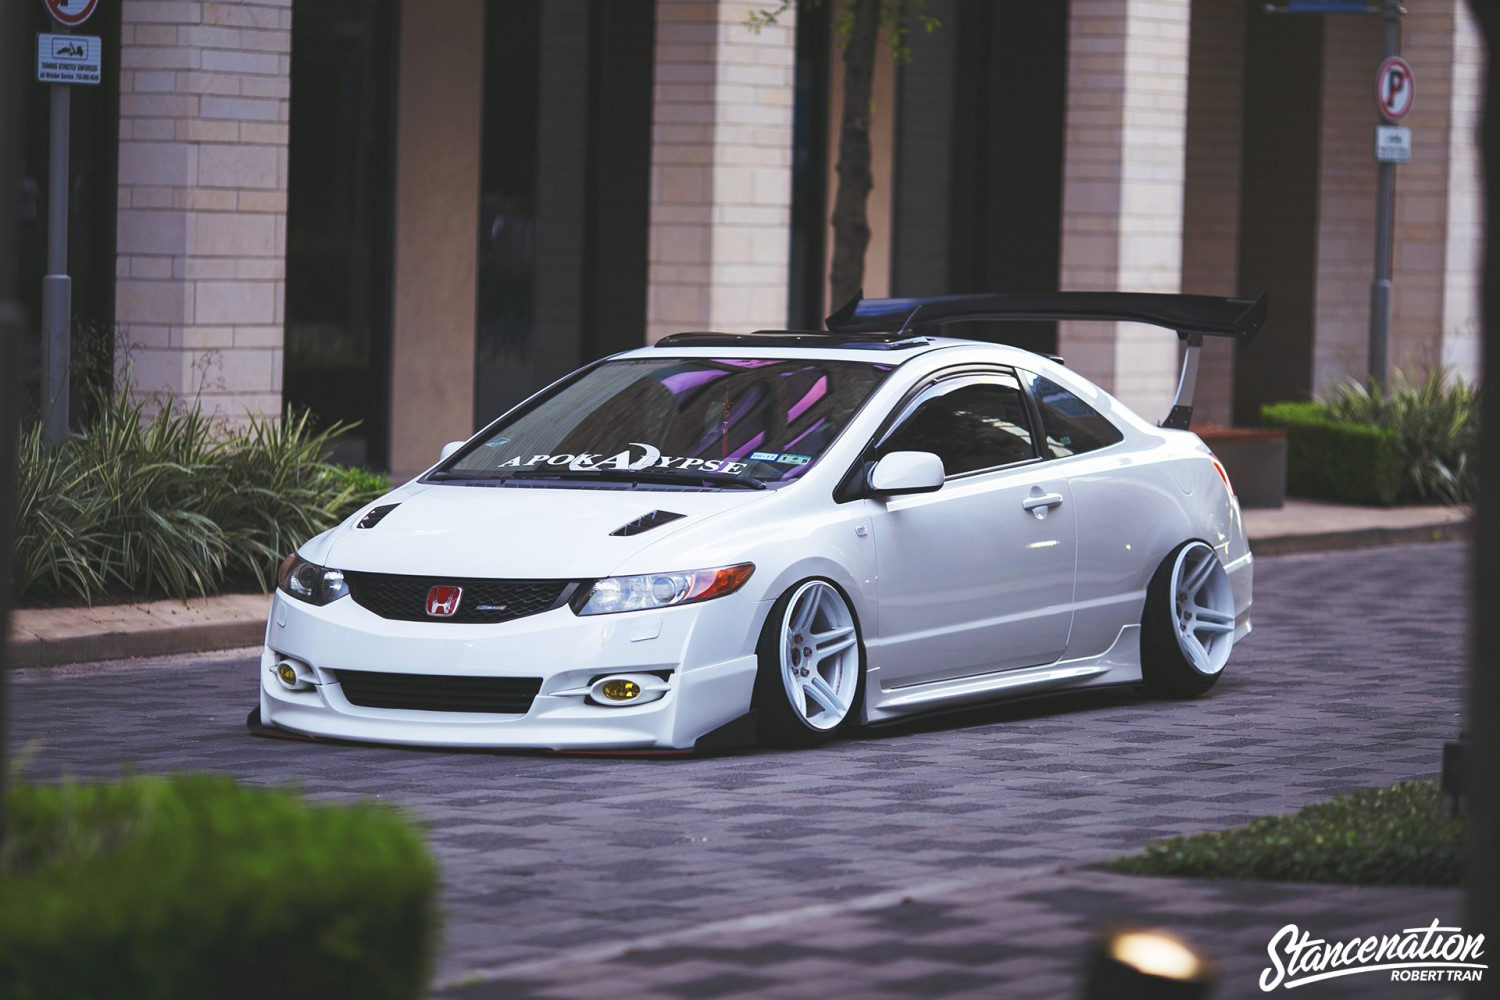 Civic Stancenation Form Gt Function